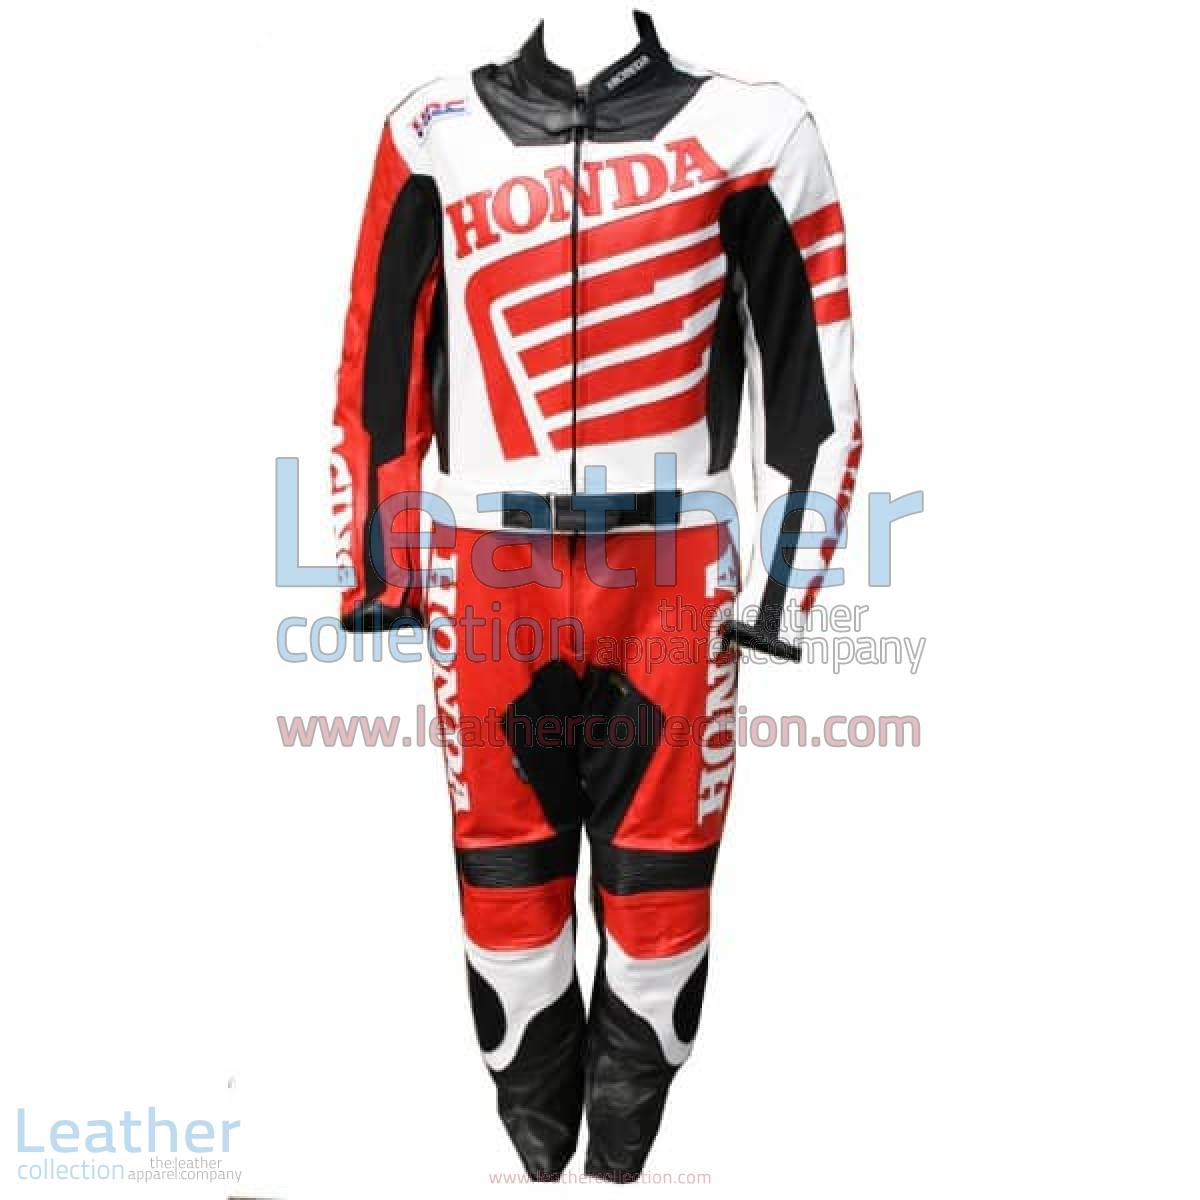 Honda Motorbike Racing Leather Suit | honda racing suit